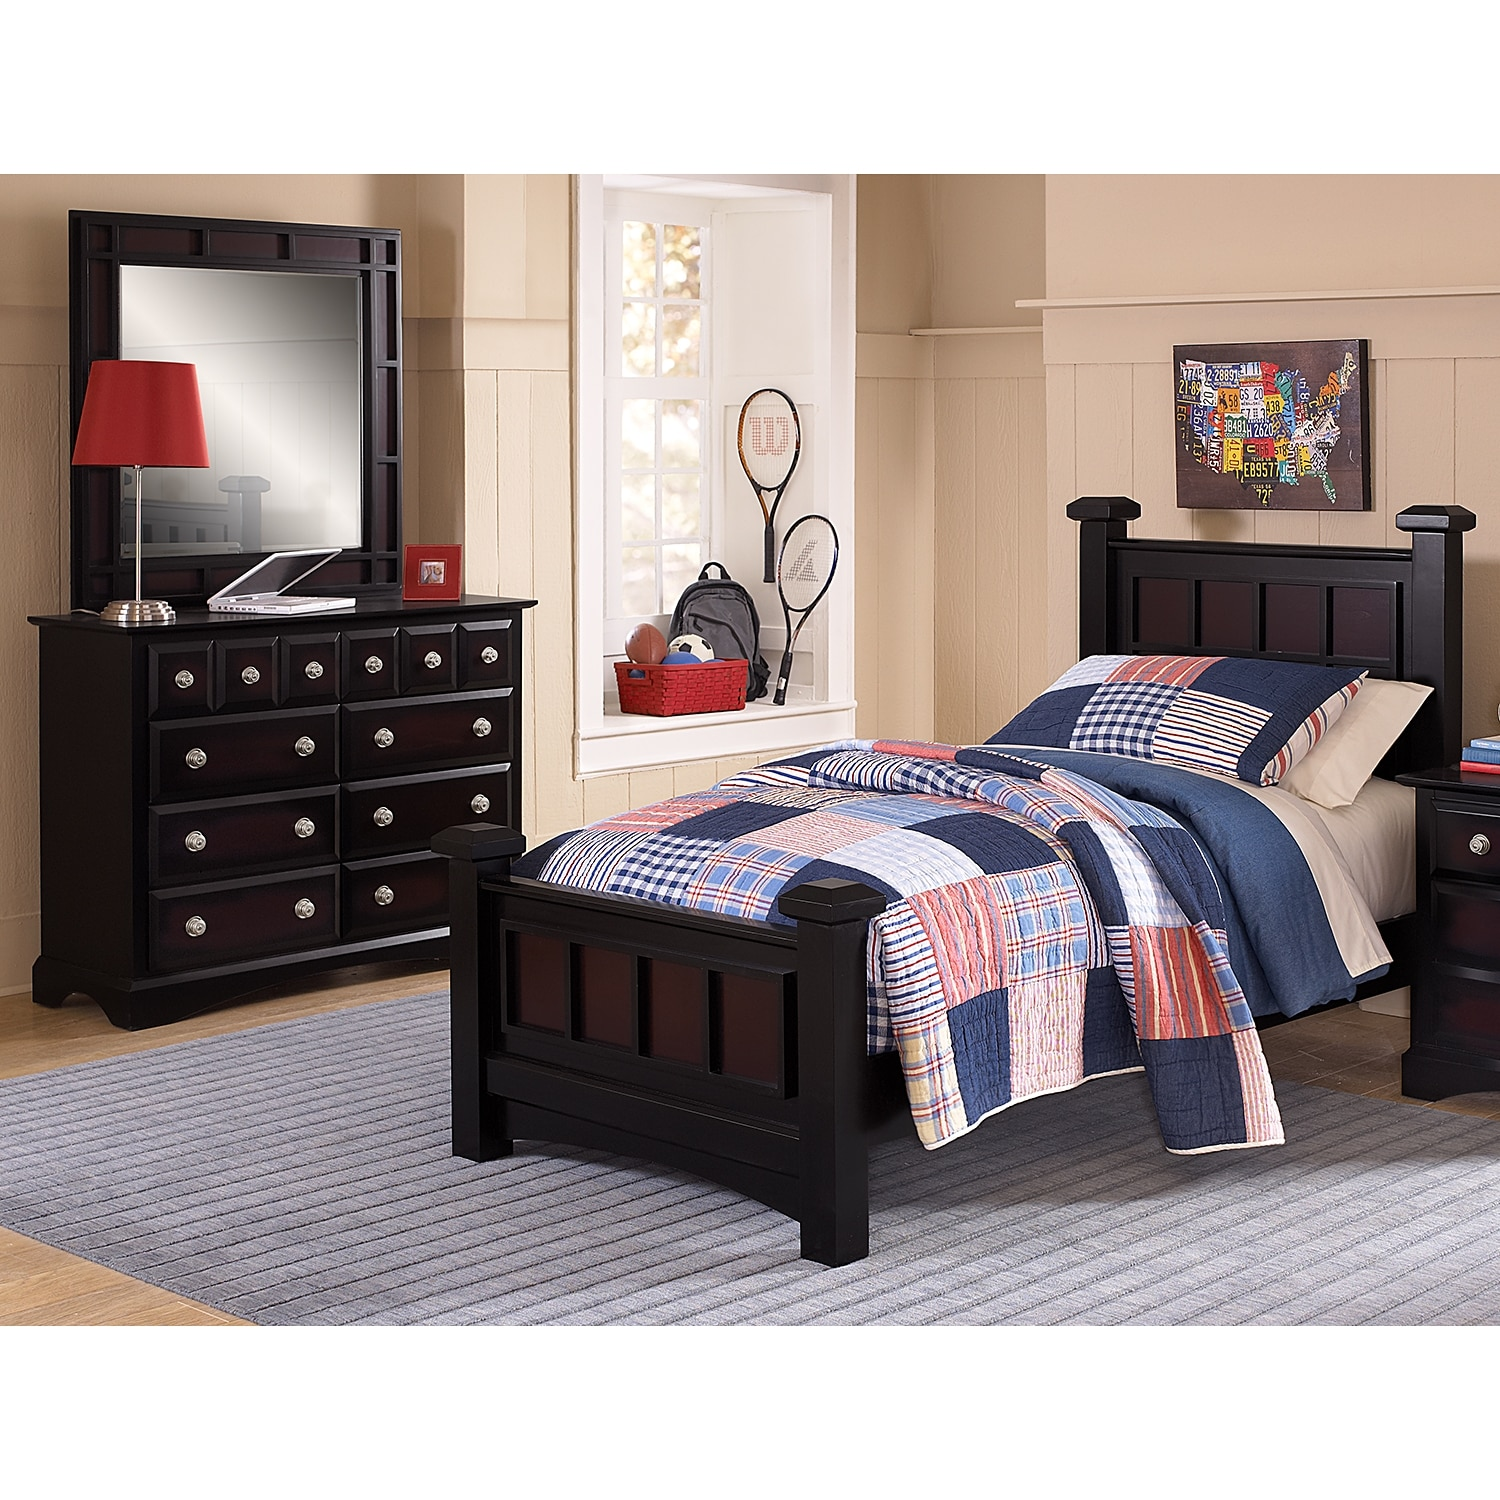 Winchester 5-Piece Twin Bedroom Set